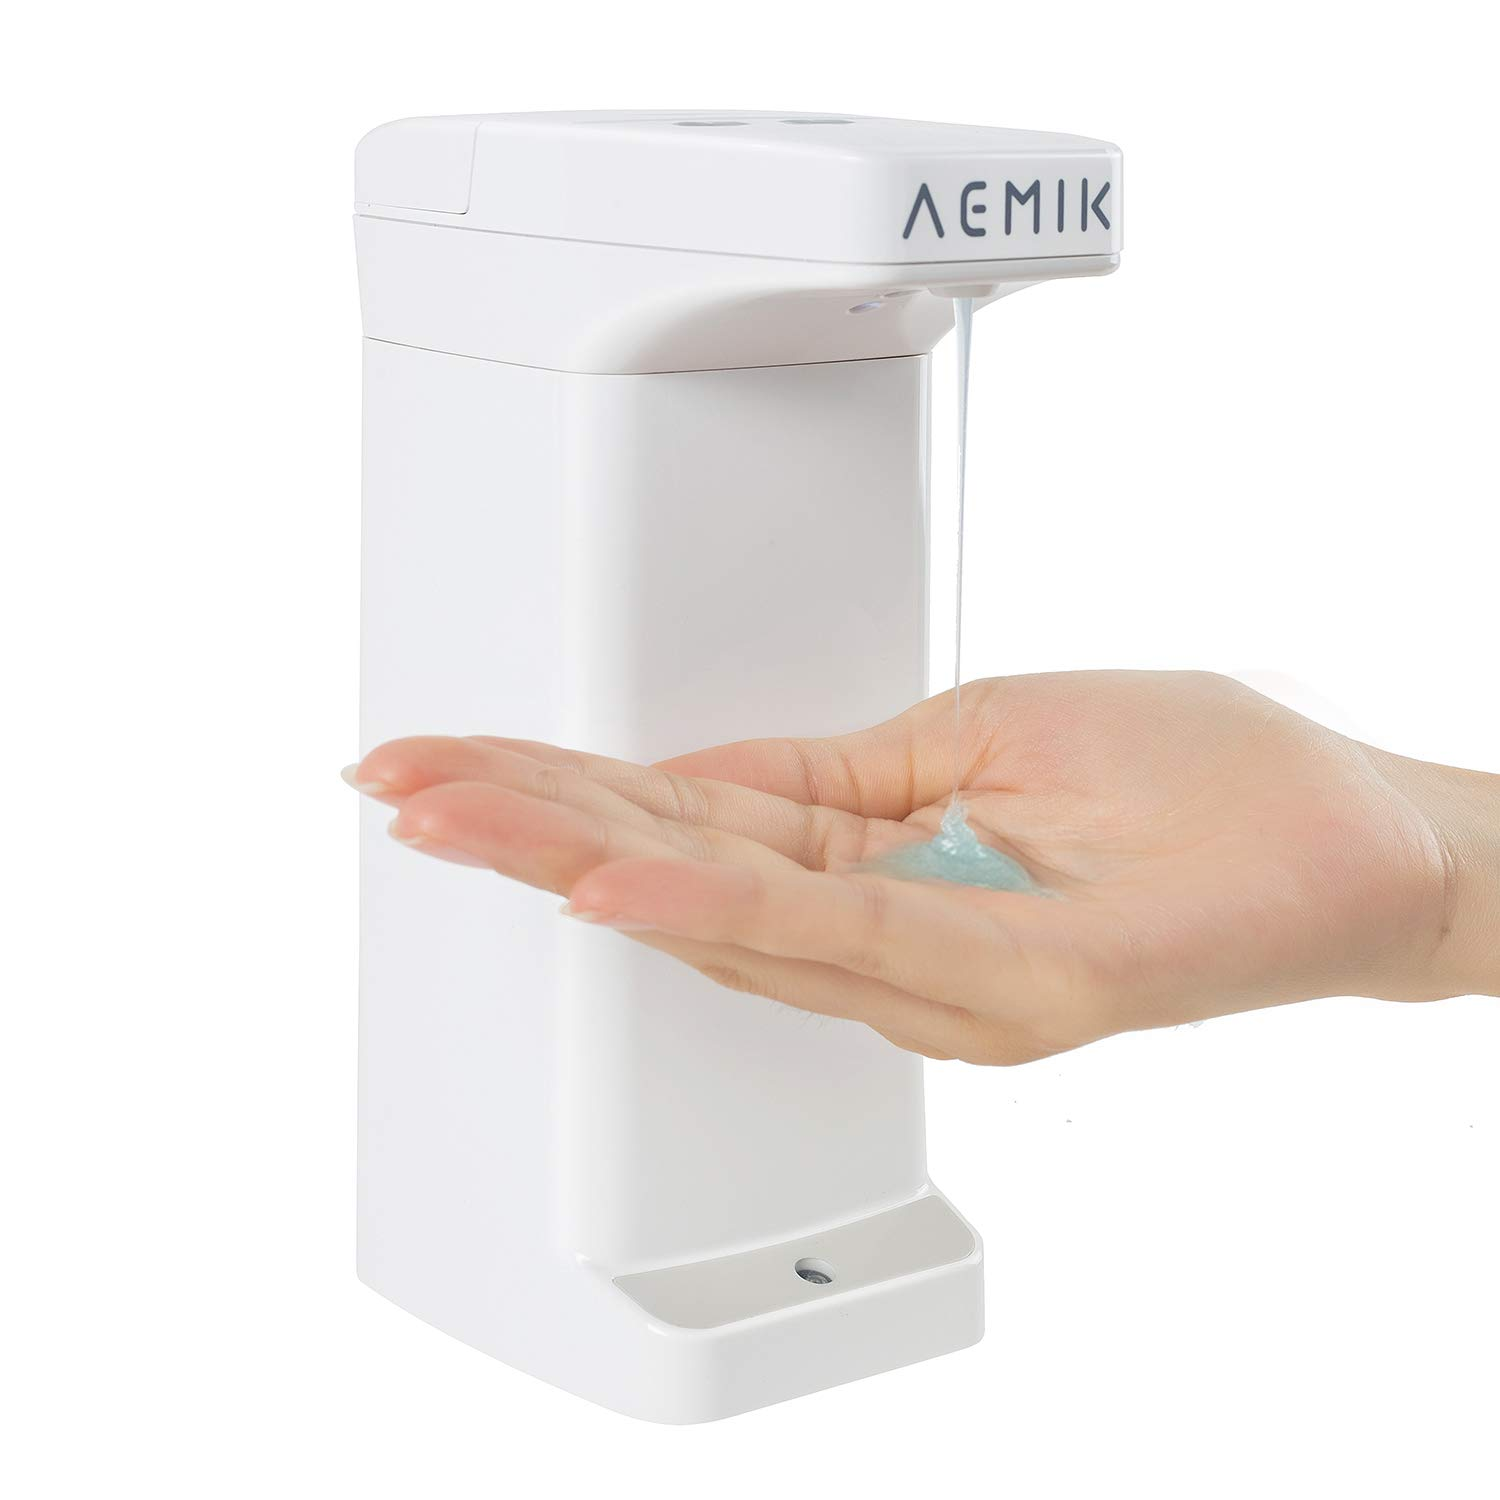 Auto Waterproof Soap Dispenser, AEMIK Touchless Auto Soap Dispenser with Detection and Adjustable Dispensing Volume Function, Hands-free Motion Sensor Liquid Dish Dispenser for Kitchen Bathroom